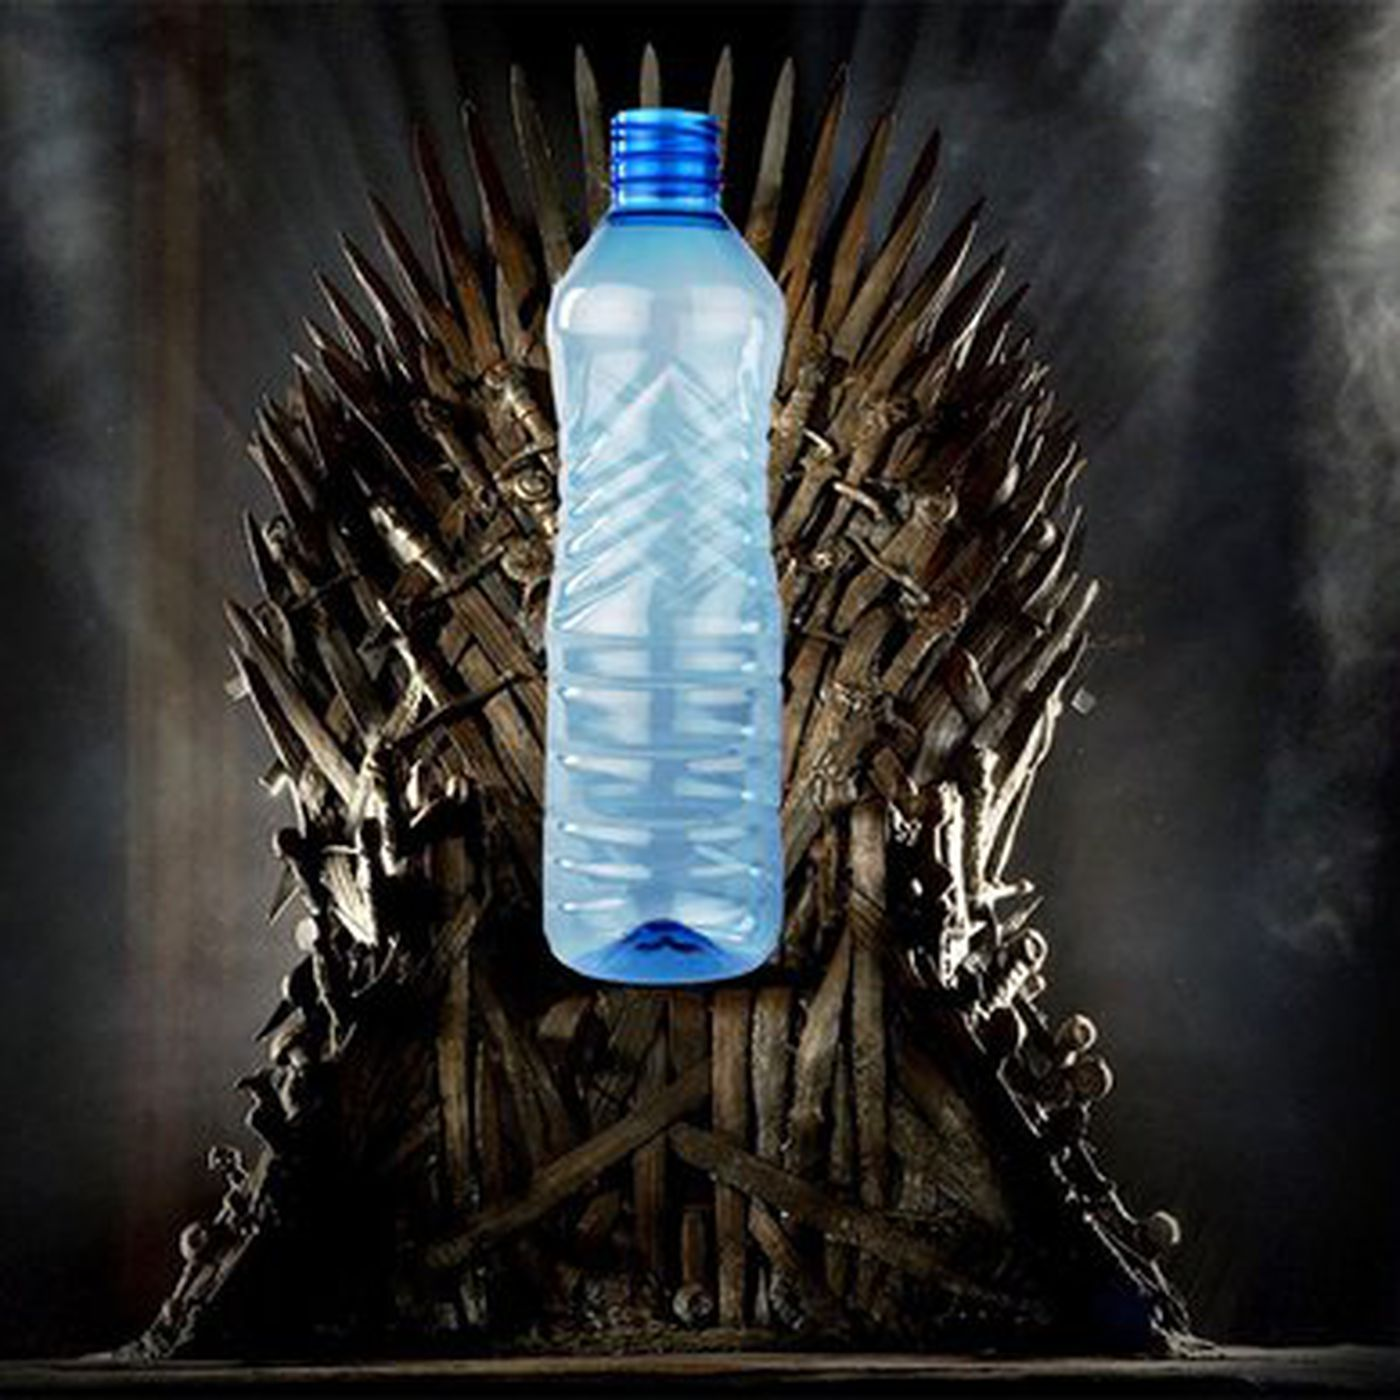 Best Plastic Water Bottle 2020 Game of Thrones' water bottle mistake stole the series finale   Vox